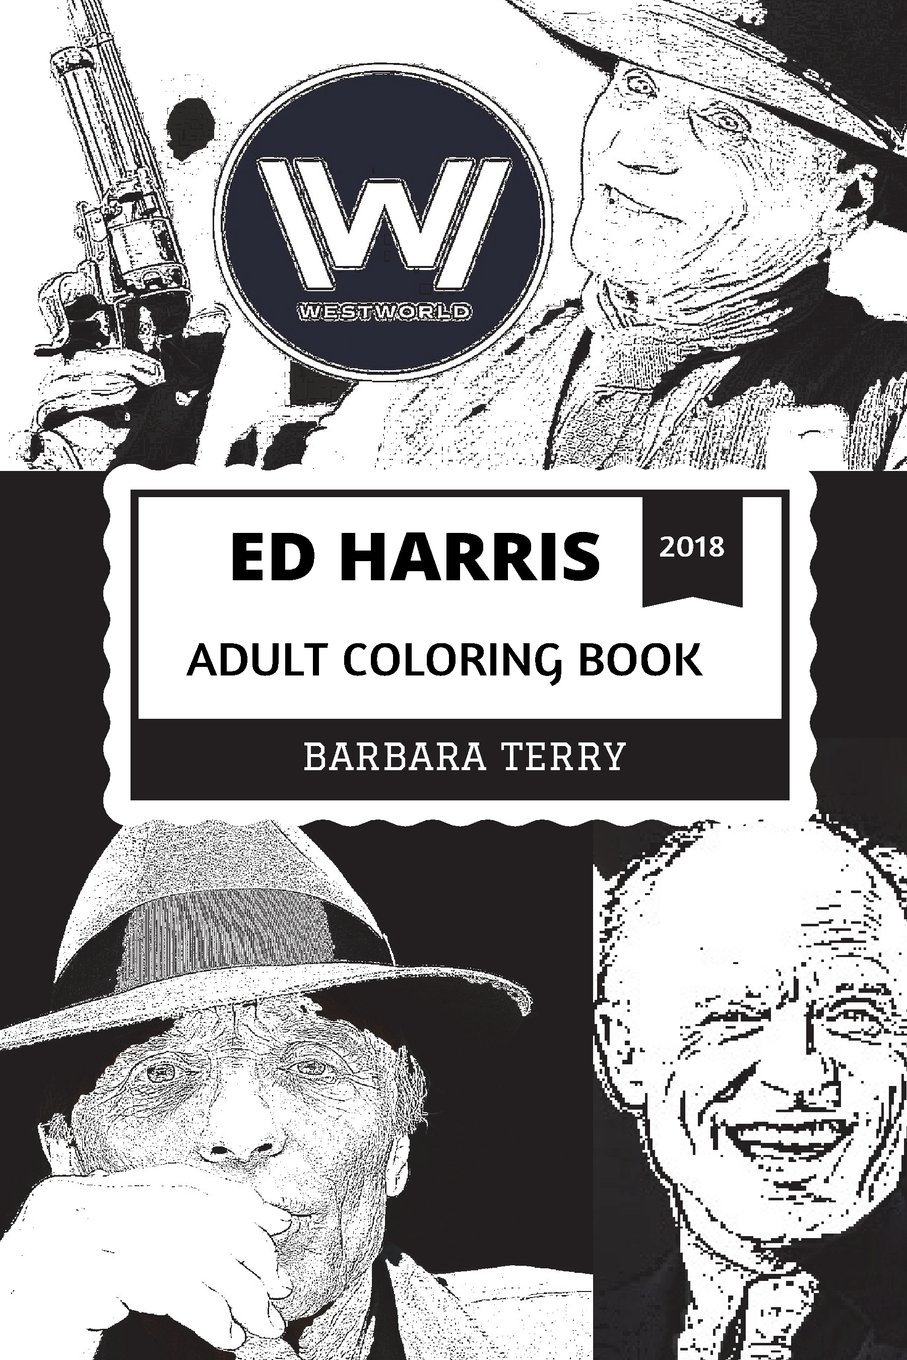 Ed Harris Adult Coloring Book: Academy Award Nominee and Man in Black from Westworld, Golden Globe Winner and Cultural Icon Inspired Adult Coloring Book (Ed Harris Books) PDF